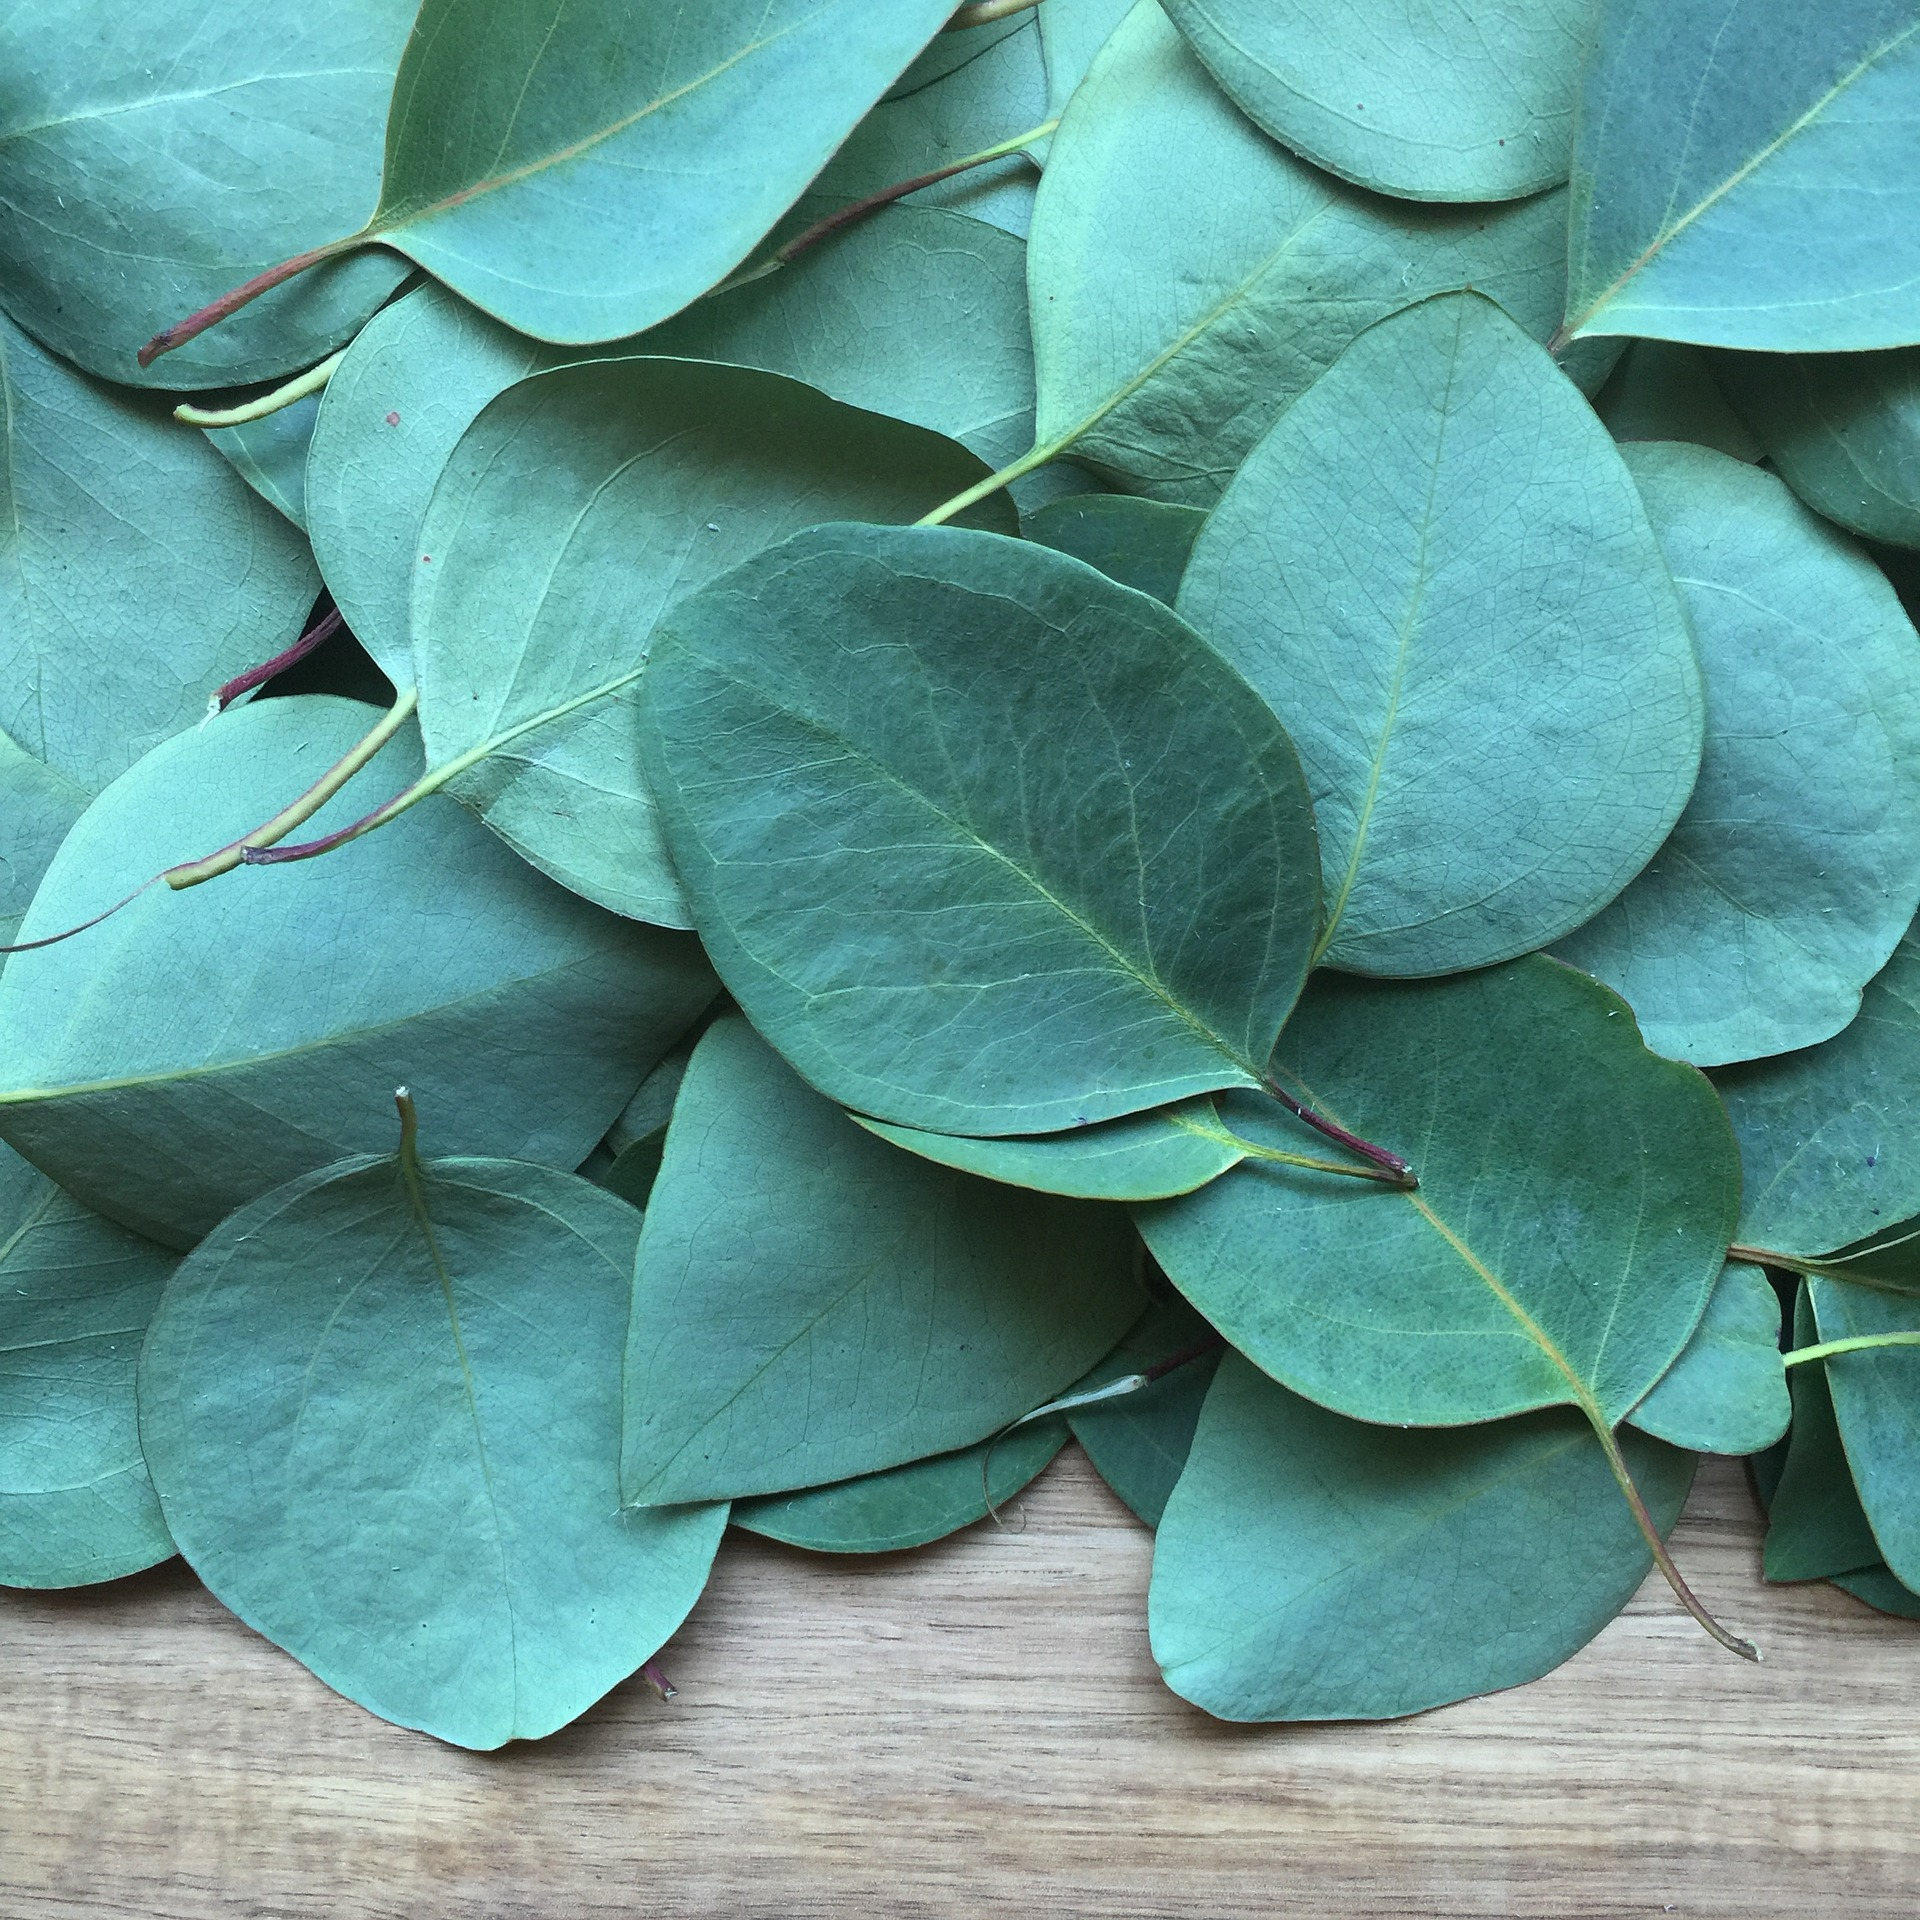 eucalyptus, a remedy for your stuffy nose